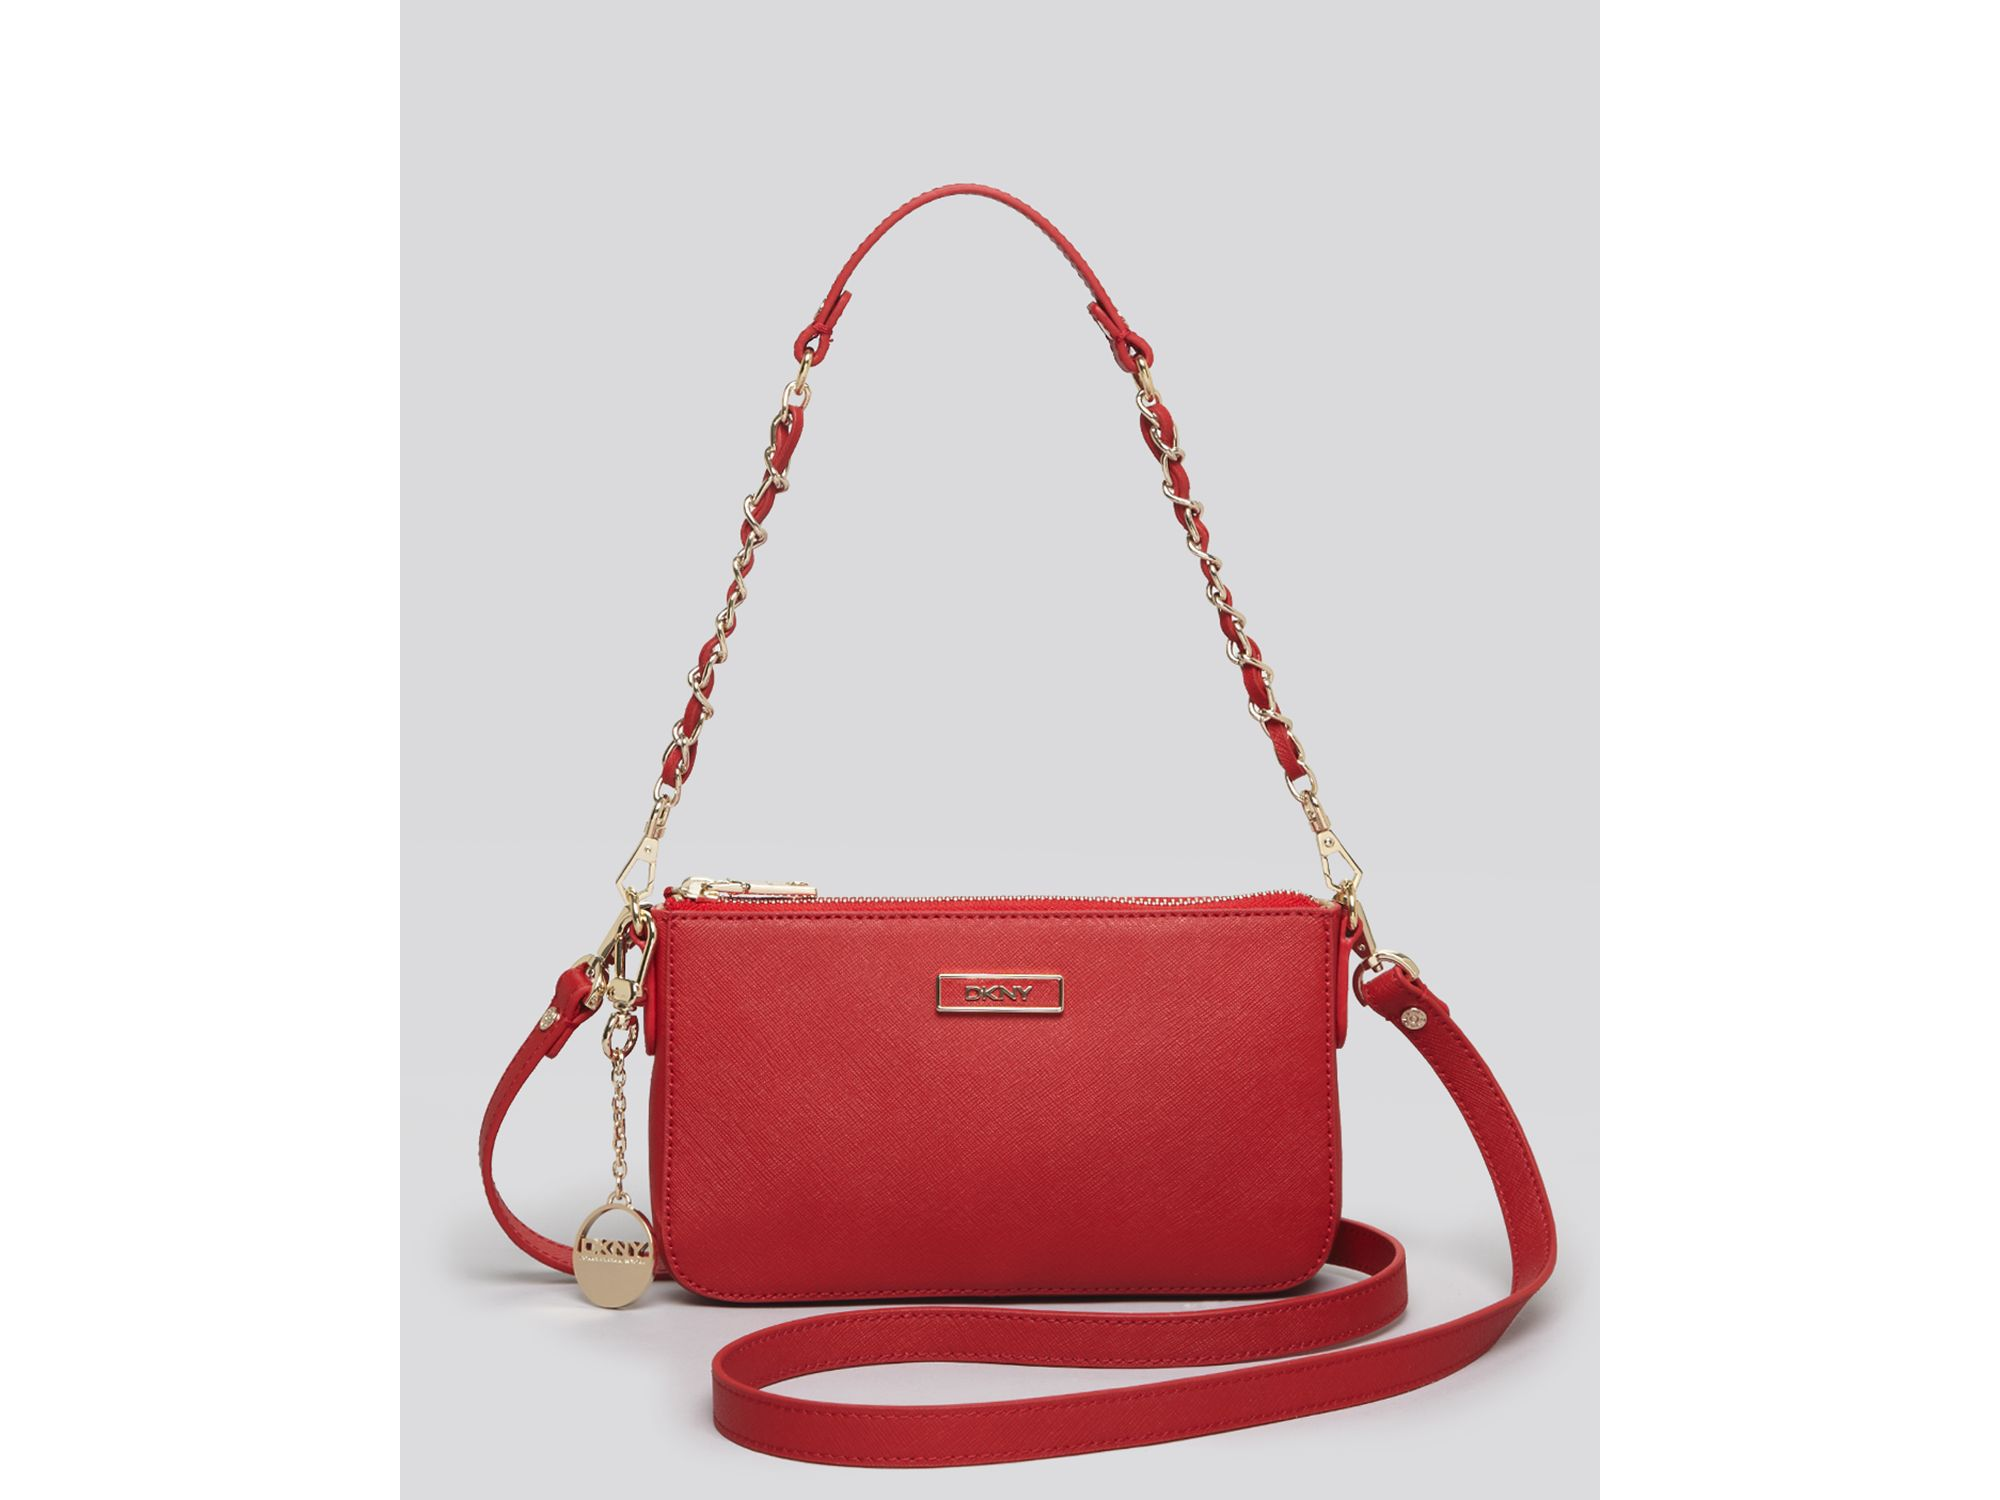 Dkny Red Shoulder Bag – Shoulder Travel Bag